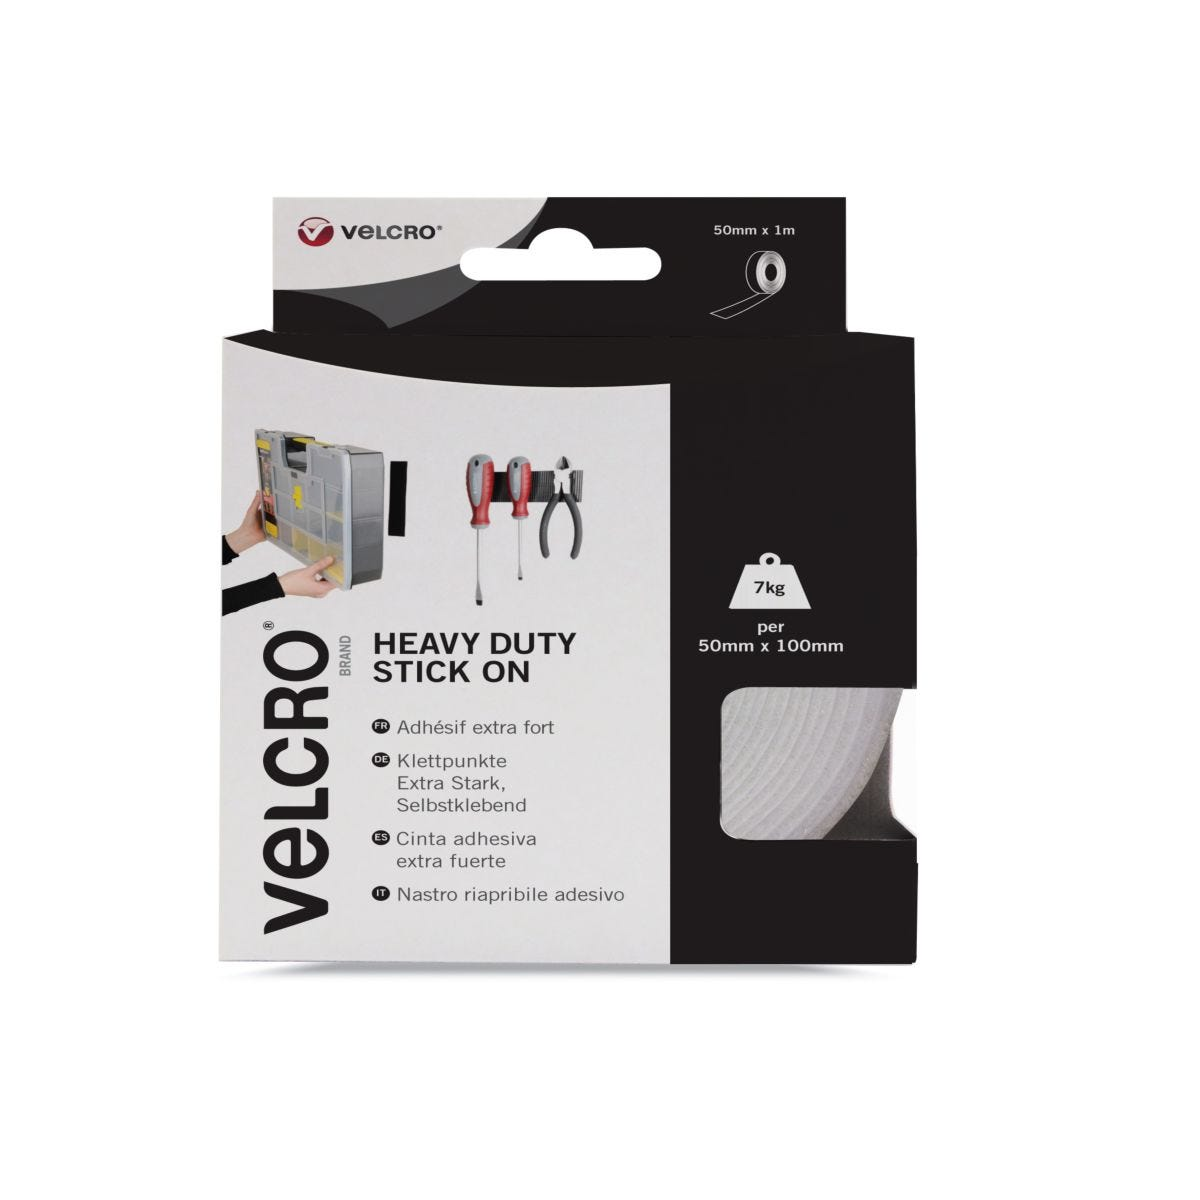 VELCRO Brand Heavy Duty Stick On Tape 50mm x 1m White